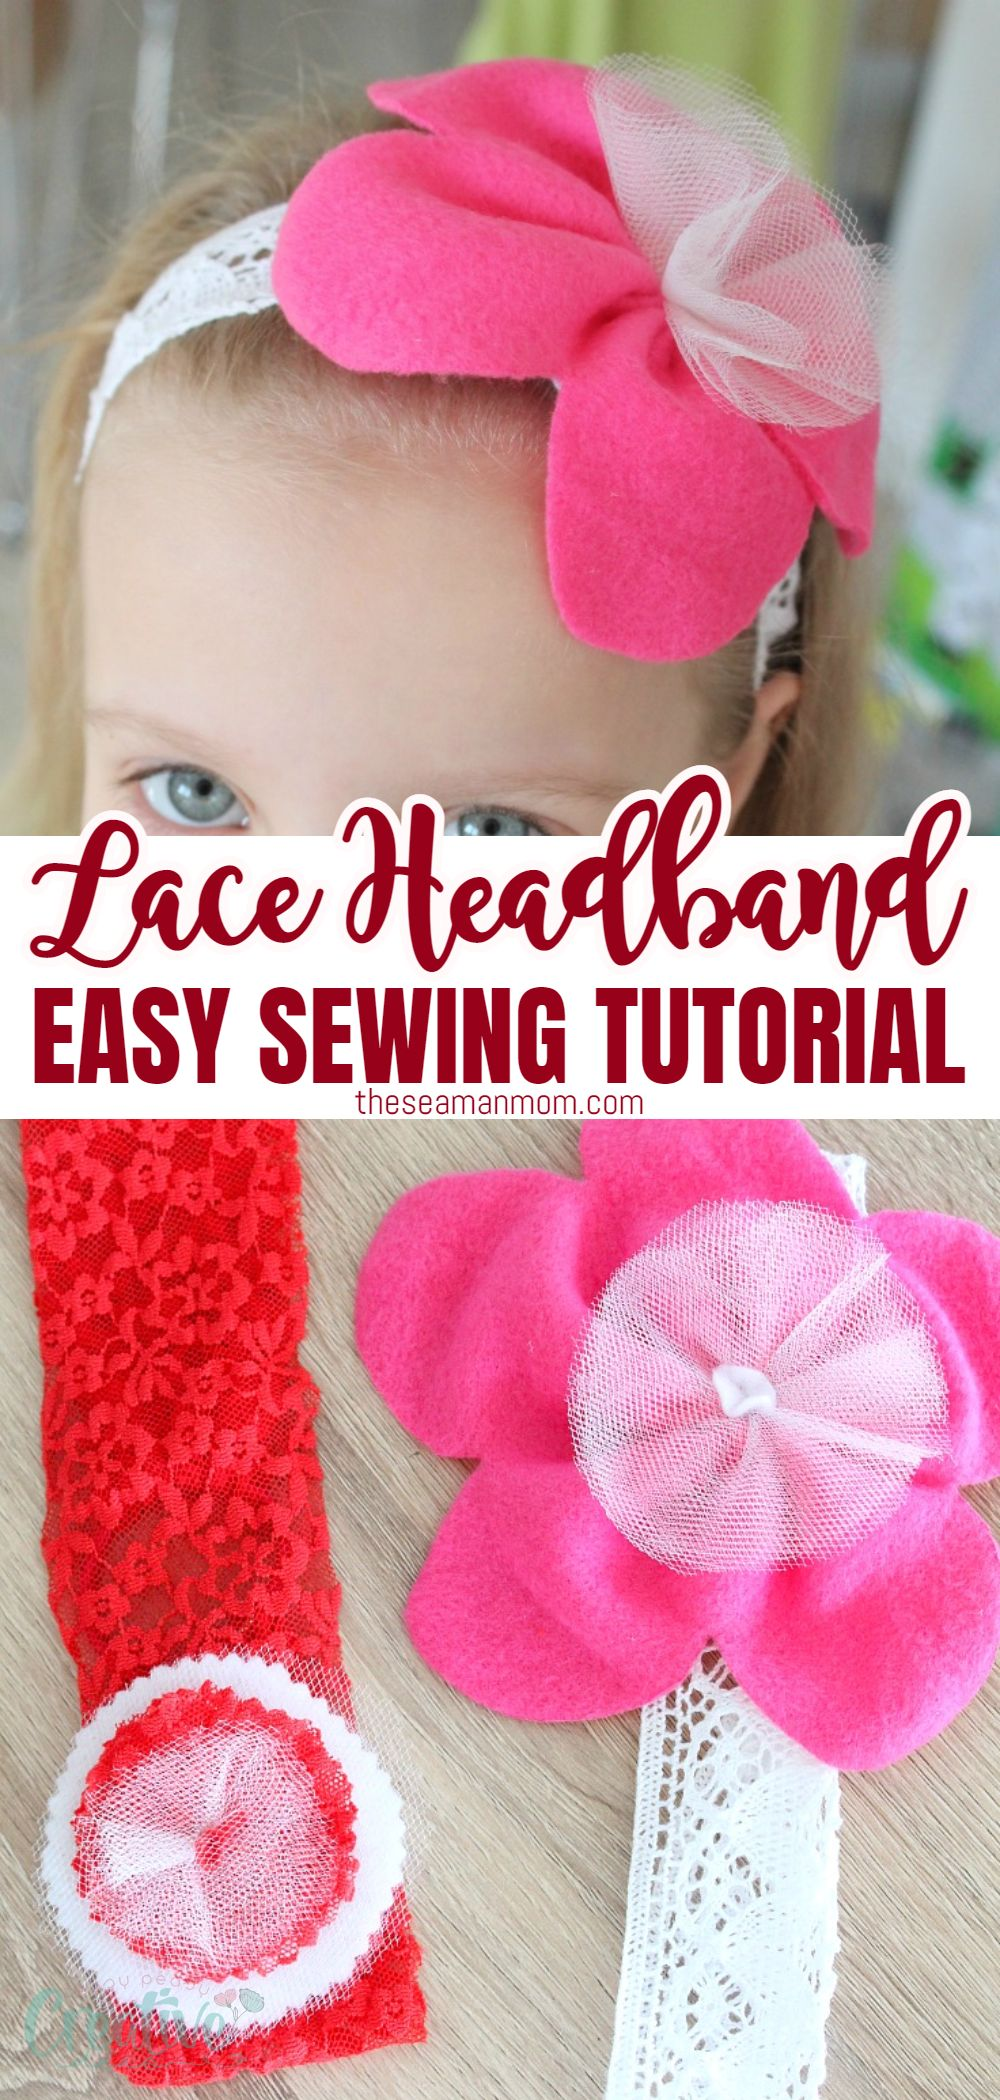 Looking for an utterly enchanting look? Lace can prettify almost anything so why not make your own lovely headband in just a few easy steps with this 15 minutes lace headband tutorial? via @petroneagu